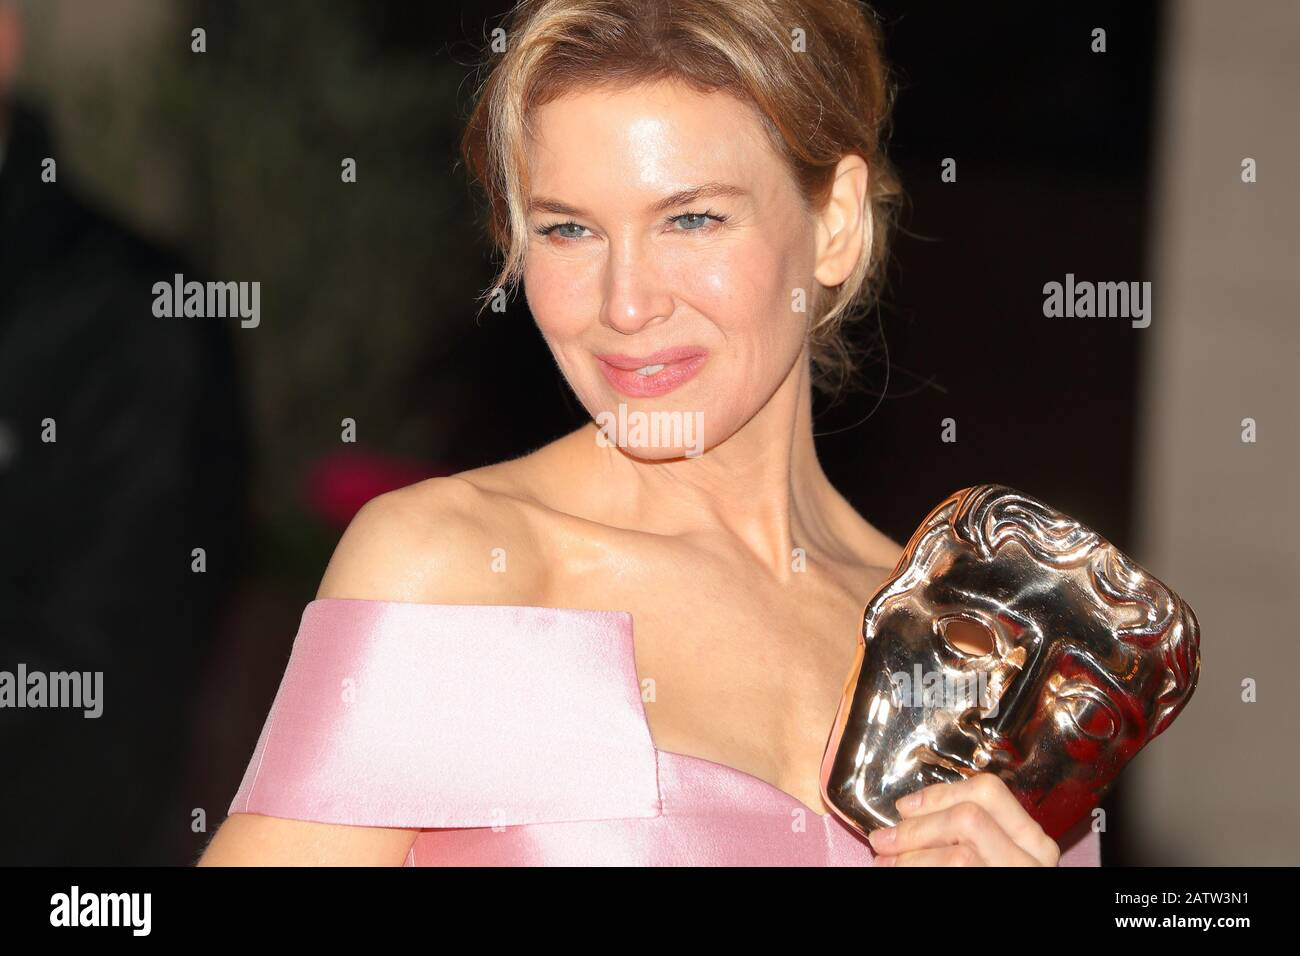 American actress Renee Zellweger showing her award at the EE BAFTA after-party dinner at the Grosvenor House Hotel in London, UK Stock Photo